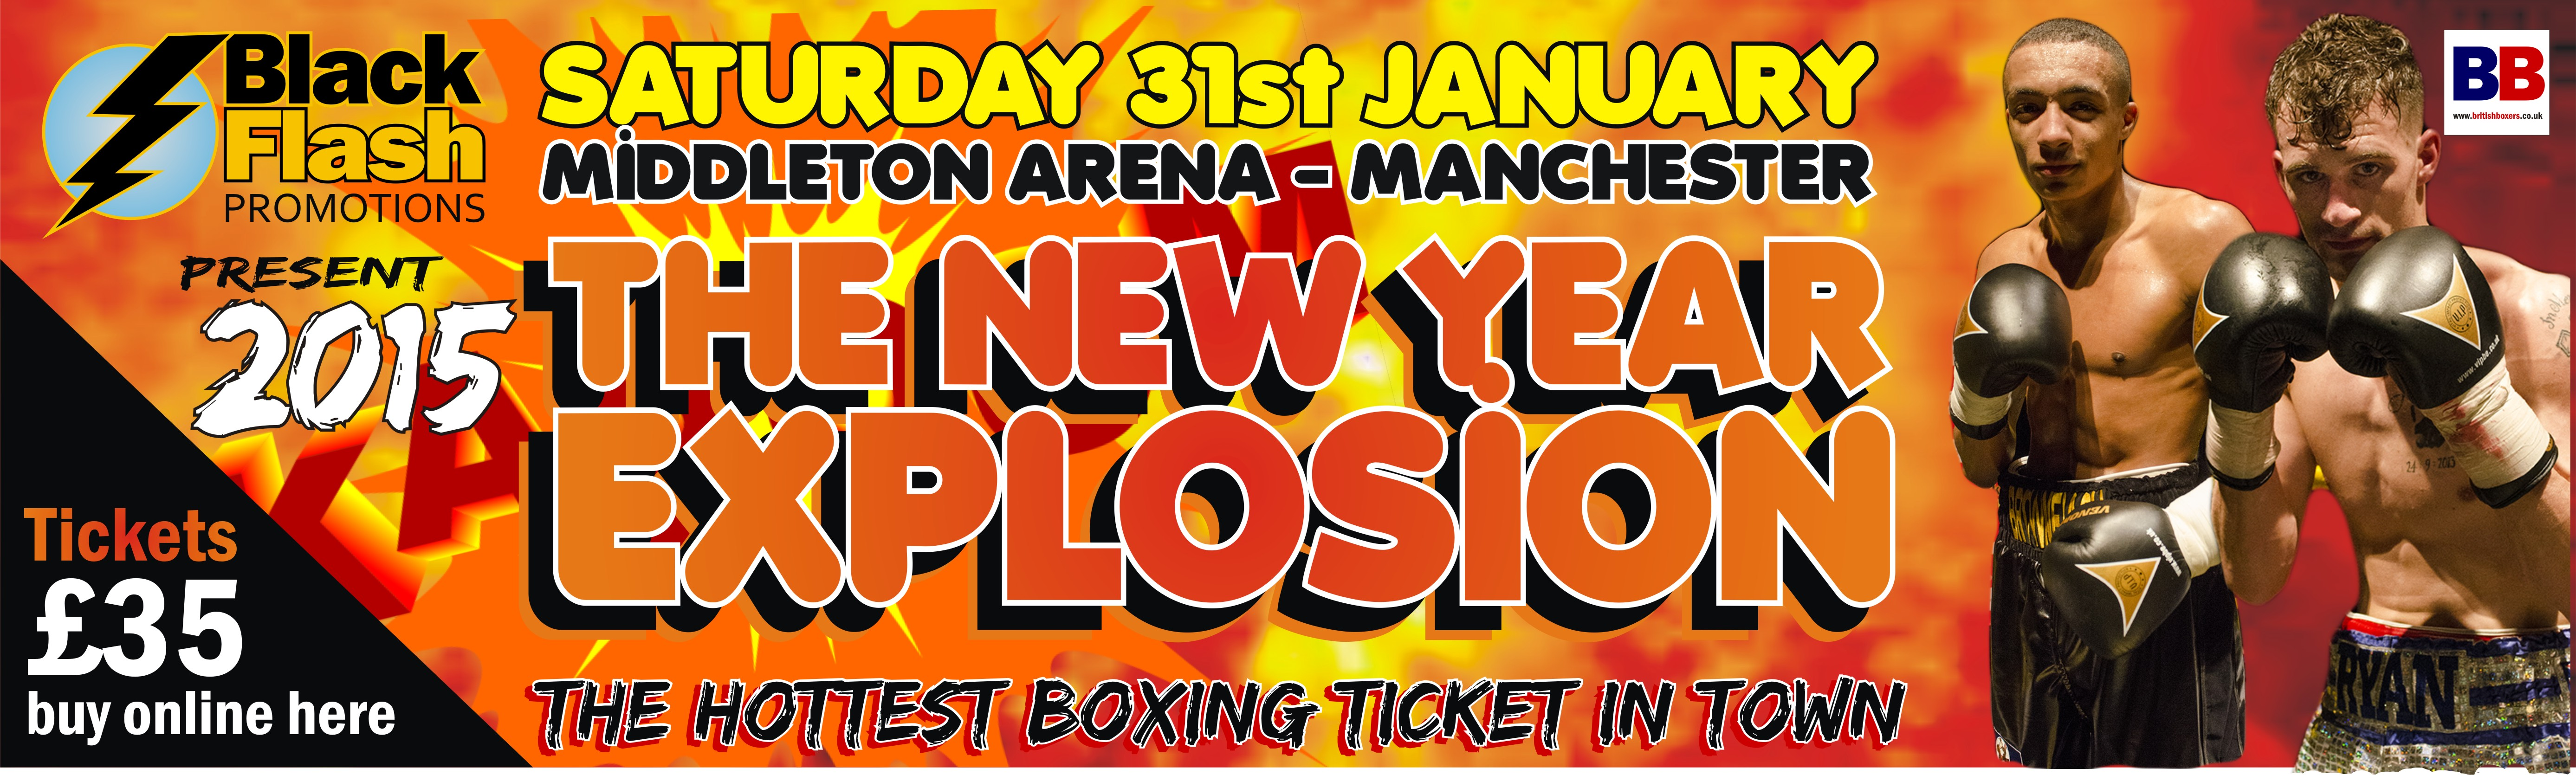 Tickets for 31st Jan 2015